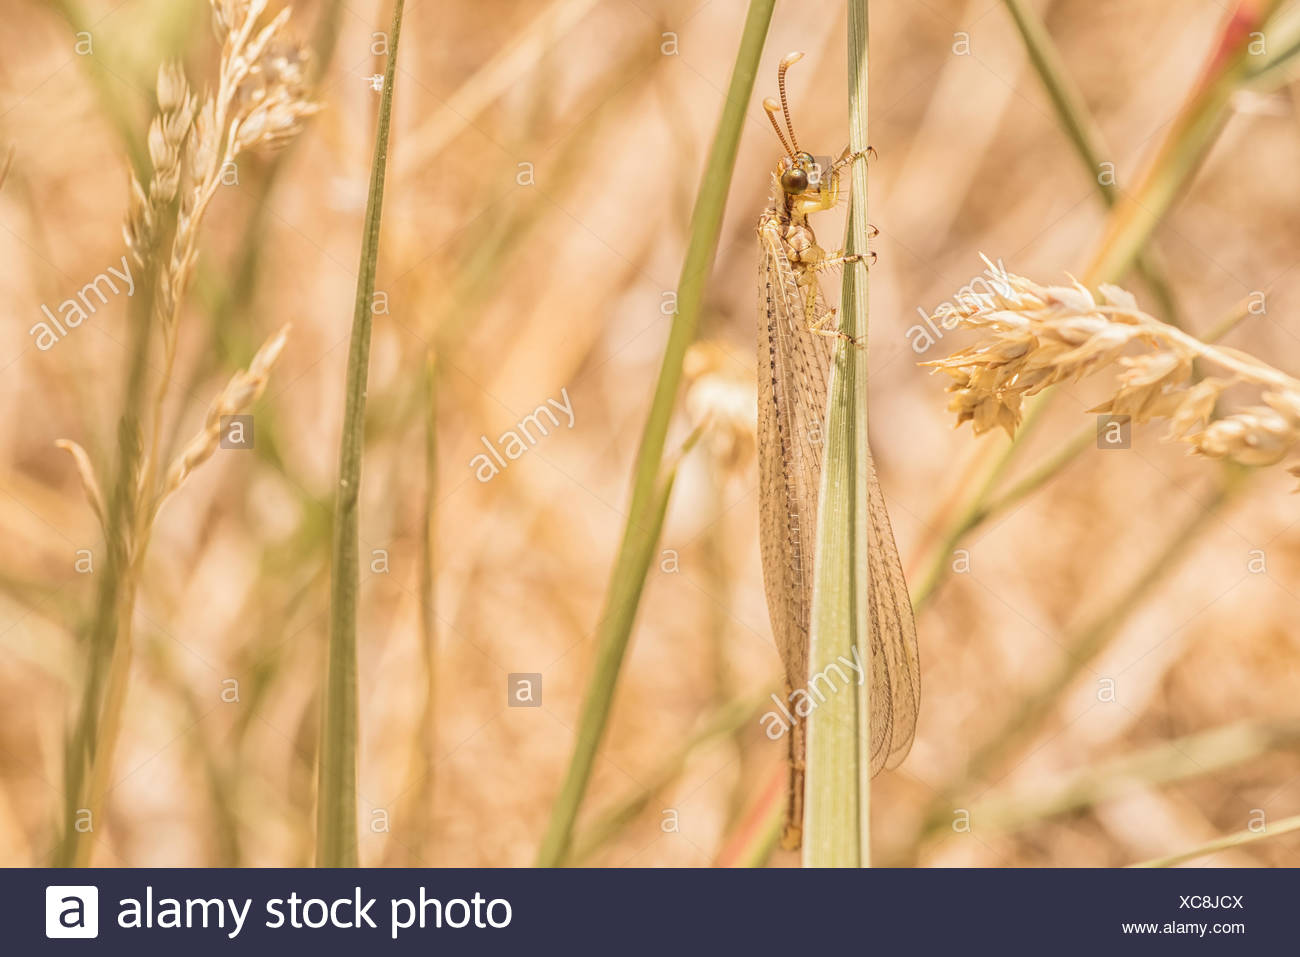 Net Winged Insect - Stock Image